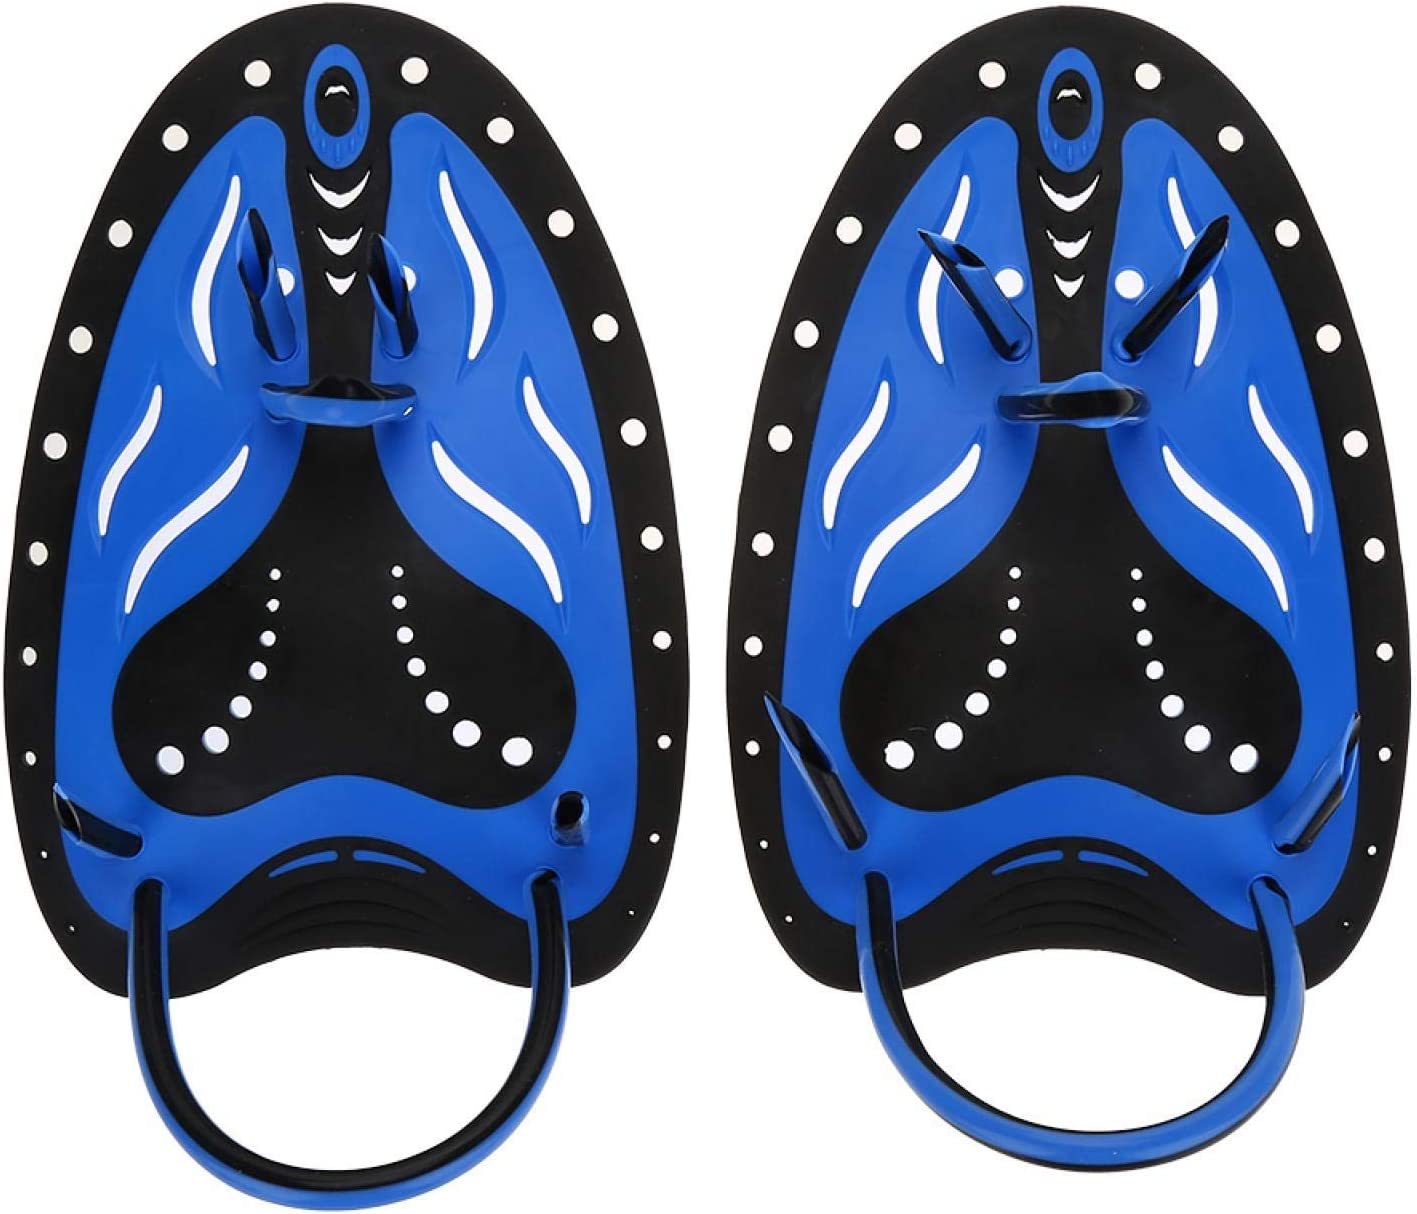 RANNYY Hand Fins, Swimming Diving Hand Fins Paddles Webbed Train